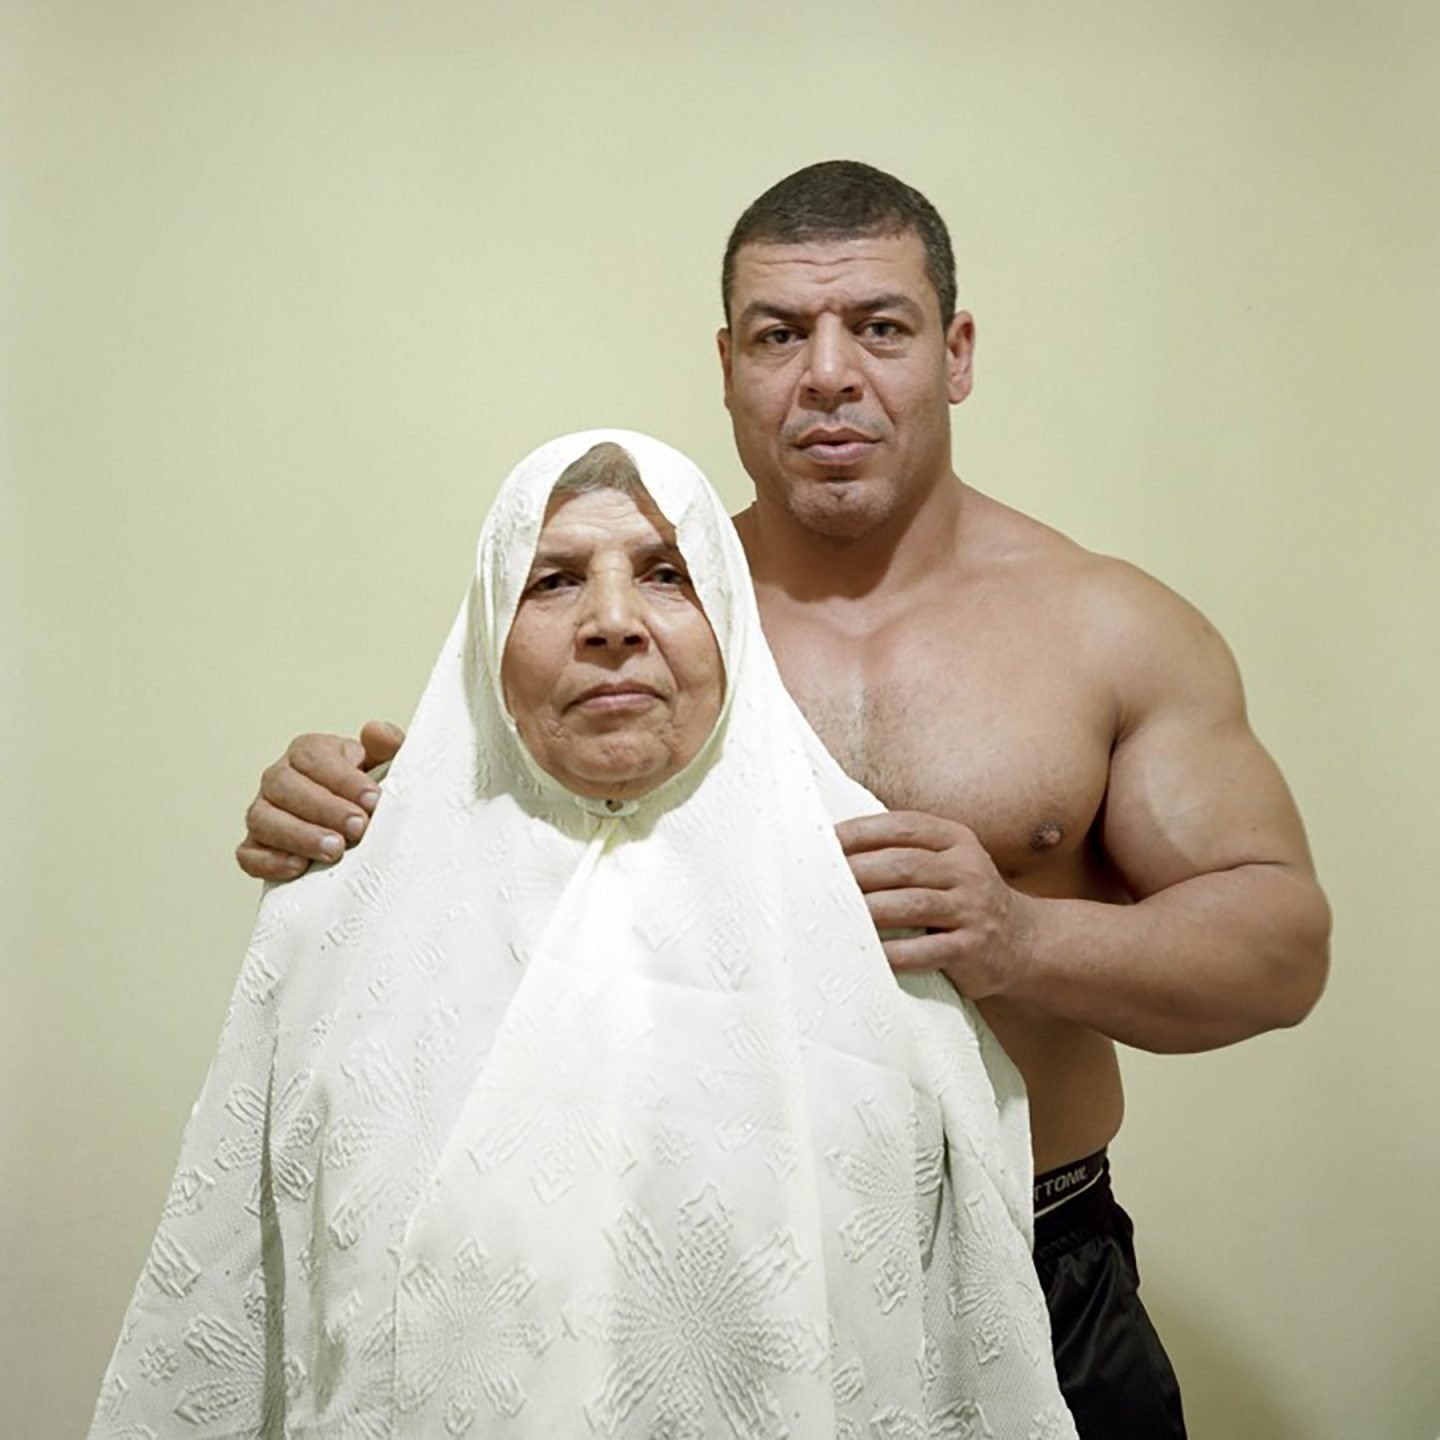 iGNANT-Photography-Denis-Dailleux-Egypt-Mother-And-Son-03